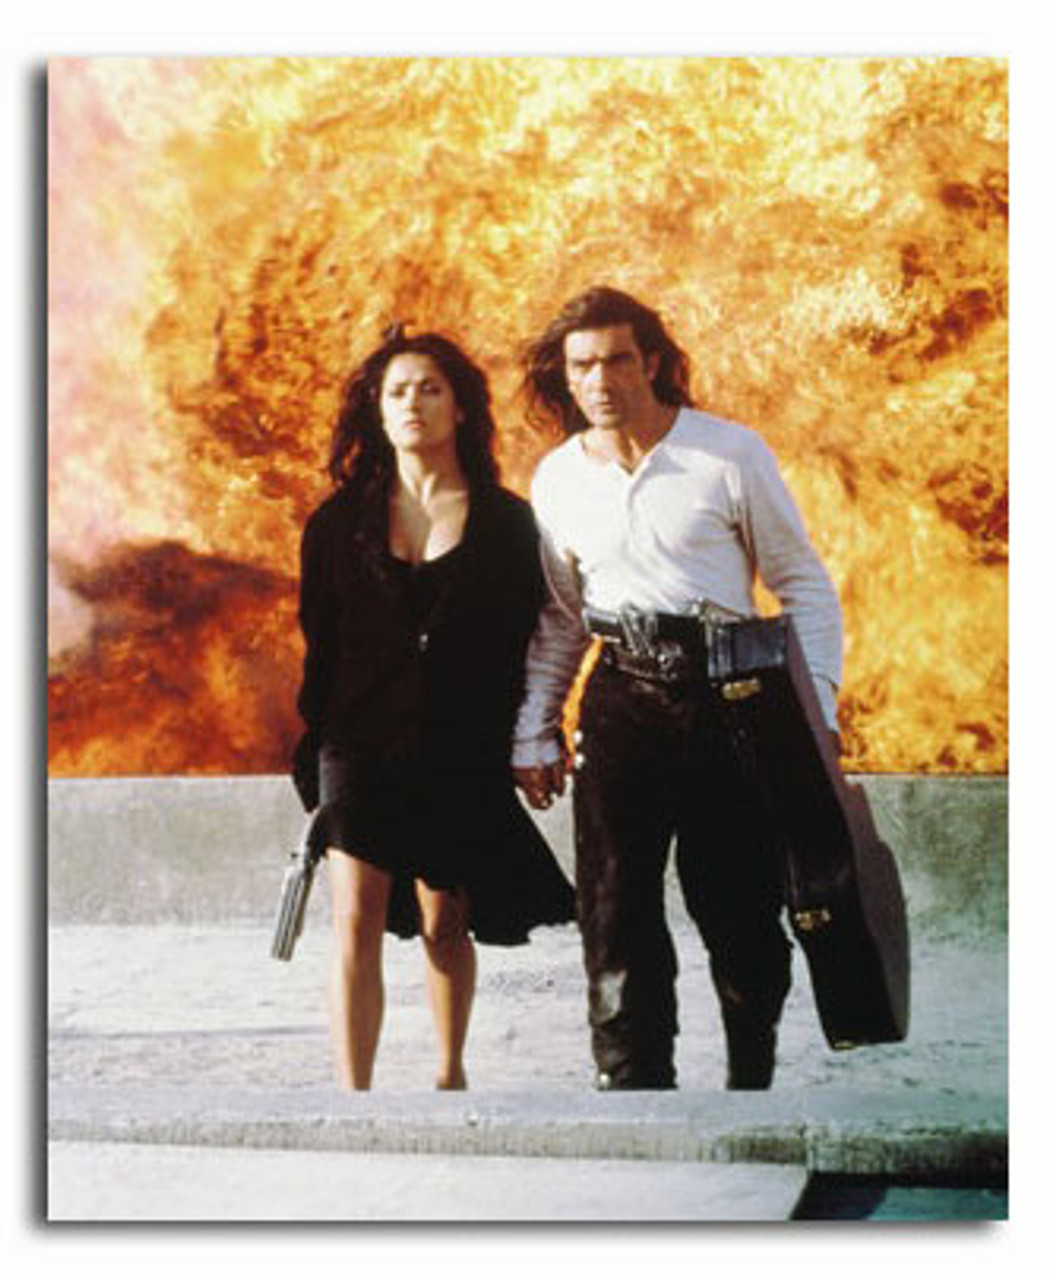 Ss2814422 Movie Picture Of Desperado Buy Celebrity Photos And Posters At Starstills Com